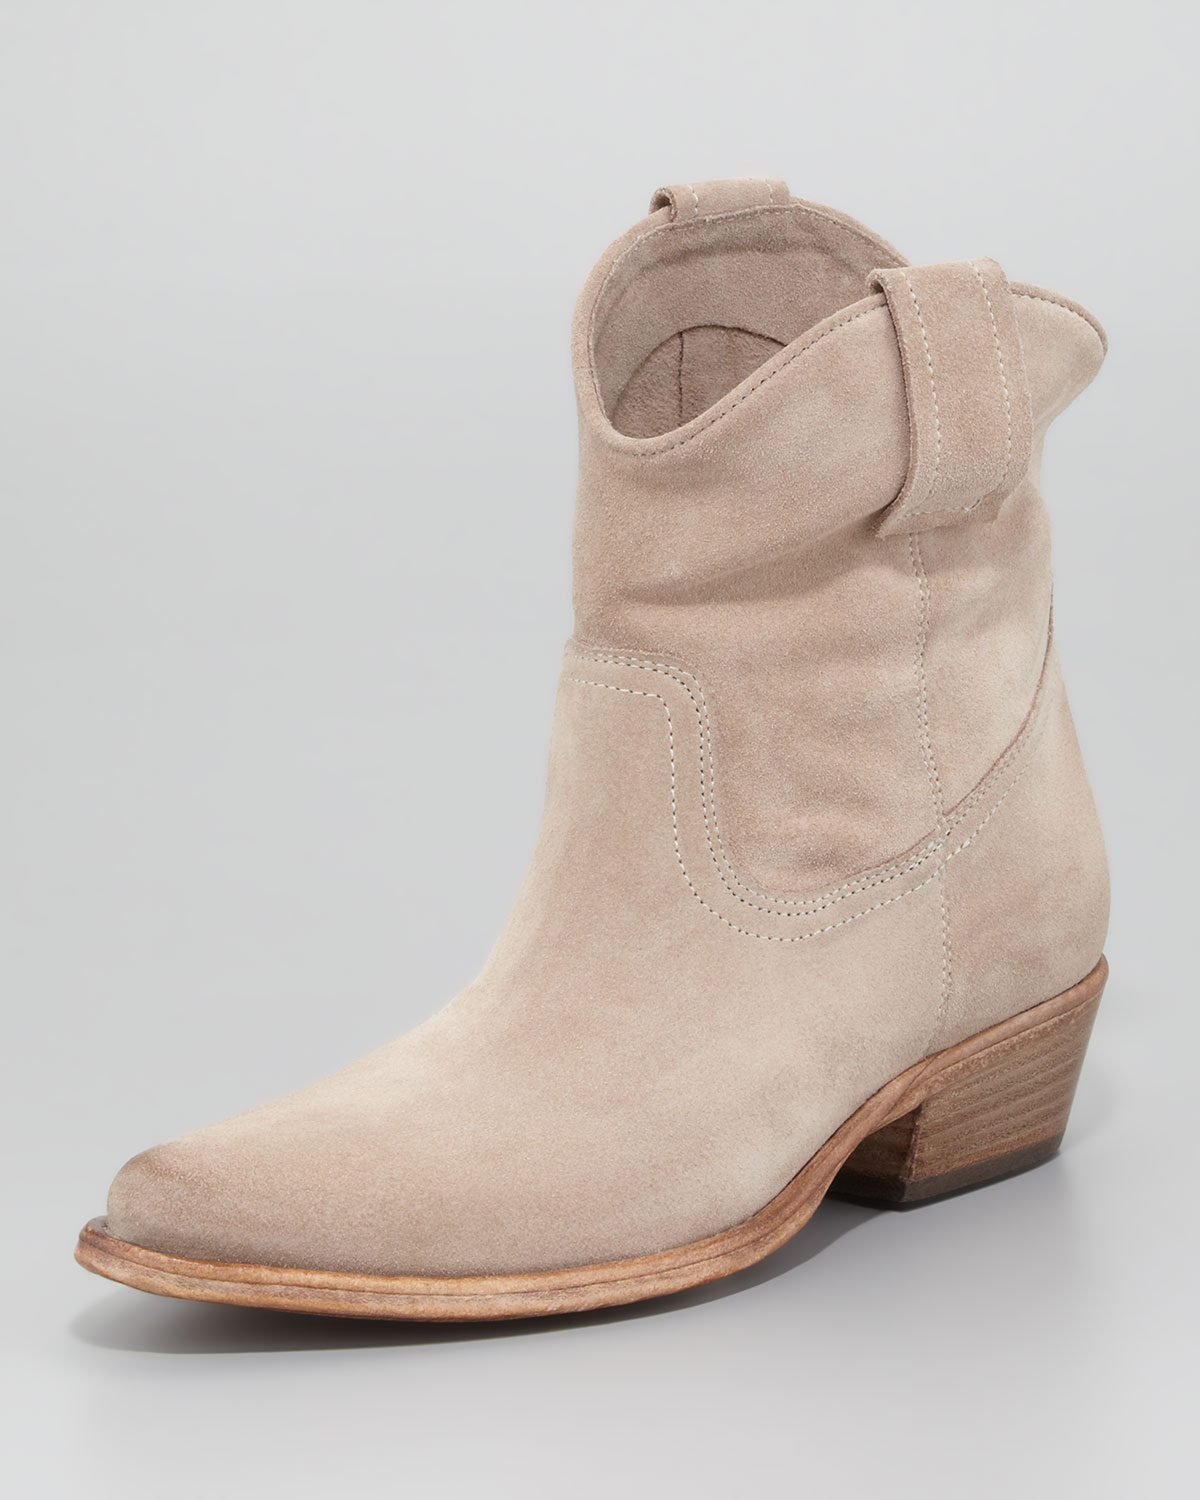 Alberto Fermani Suede Ankle Boots authentic online g2QNs